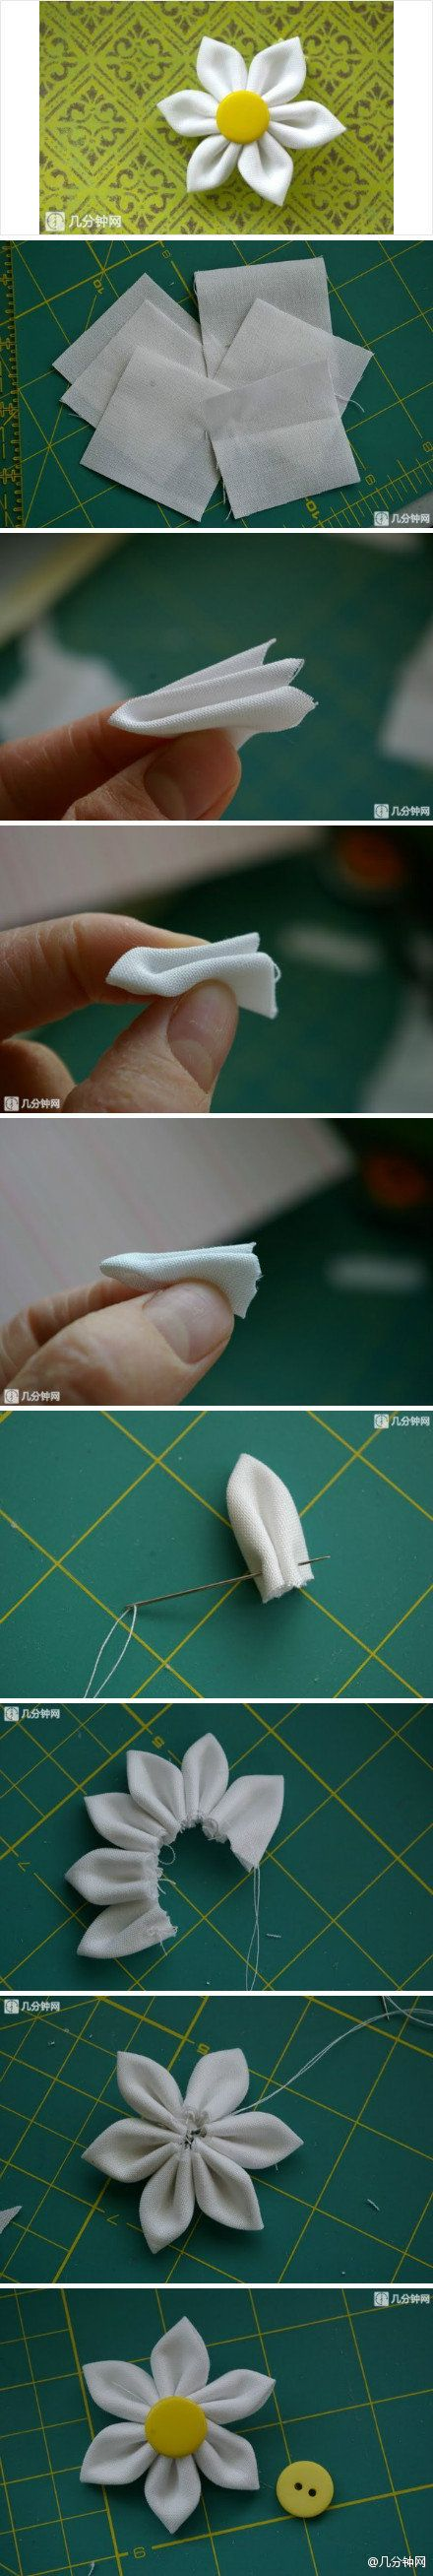 DIY Simple Fabric Flower - make some to put on the baby headbands.